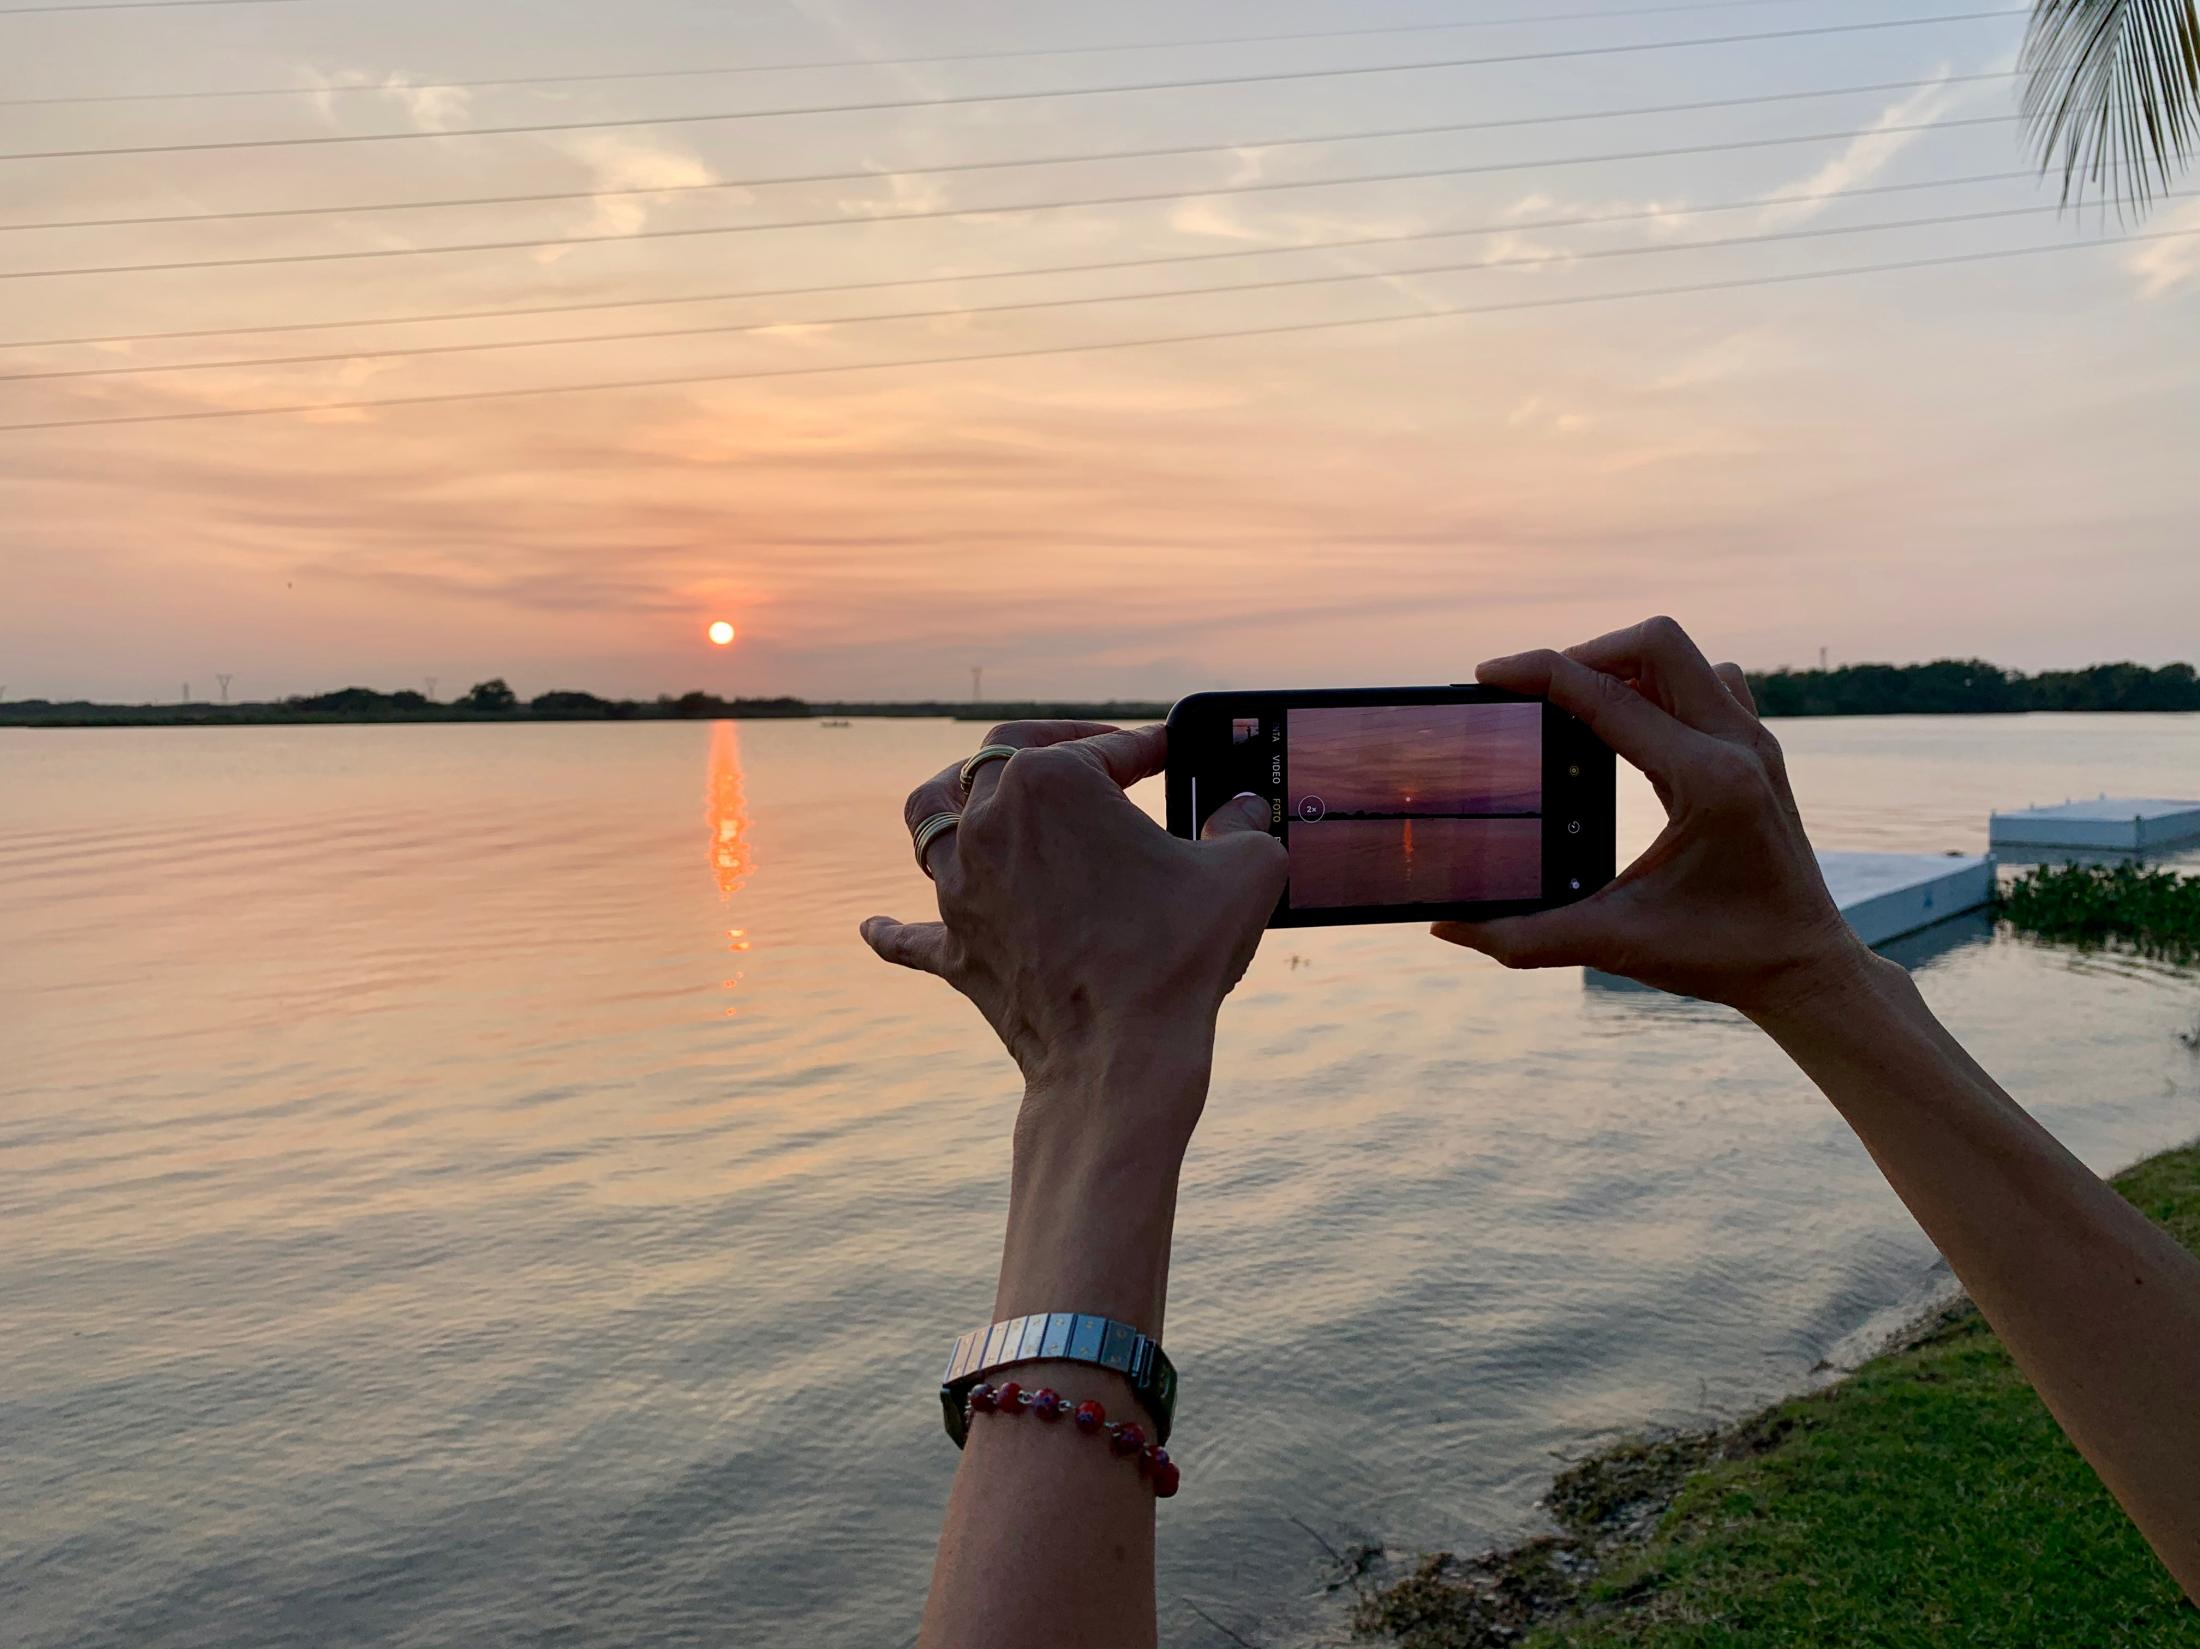 Tampico, Tamaulipas México. 2019. Mother taking a picture of one of many beautiful sunsets that can be appreciated at this lagoon.